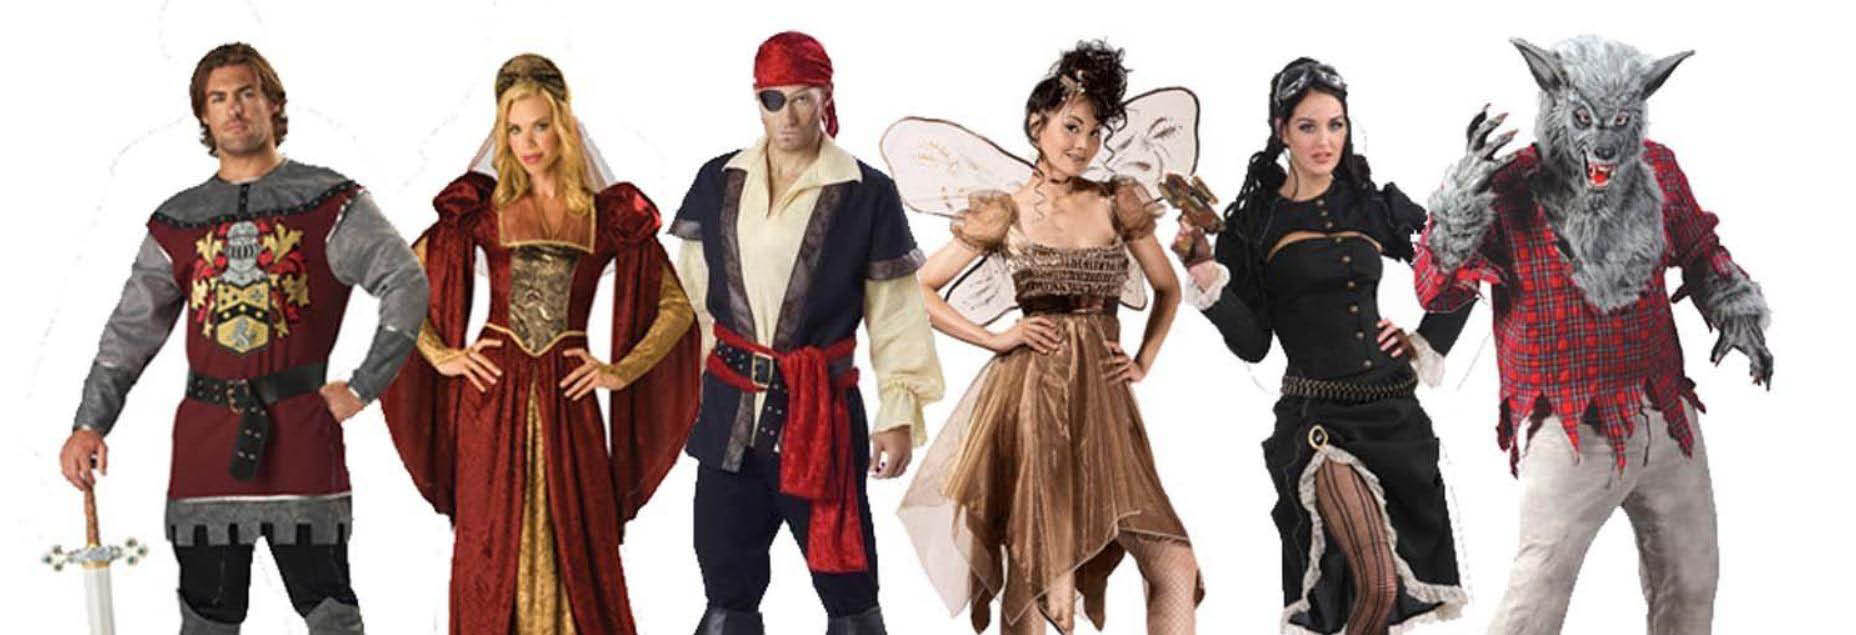 Complete Hollywood Costume Super Store for Every Occasion banner